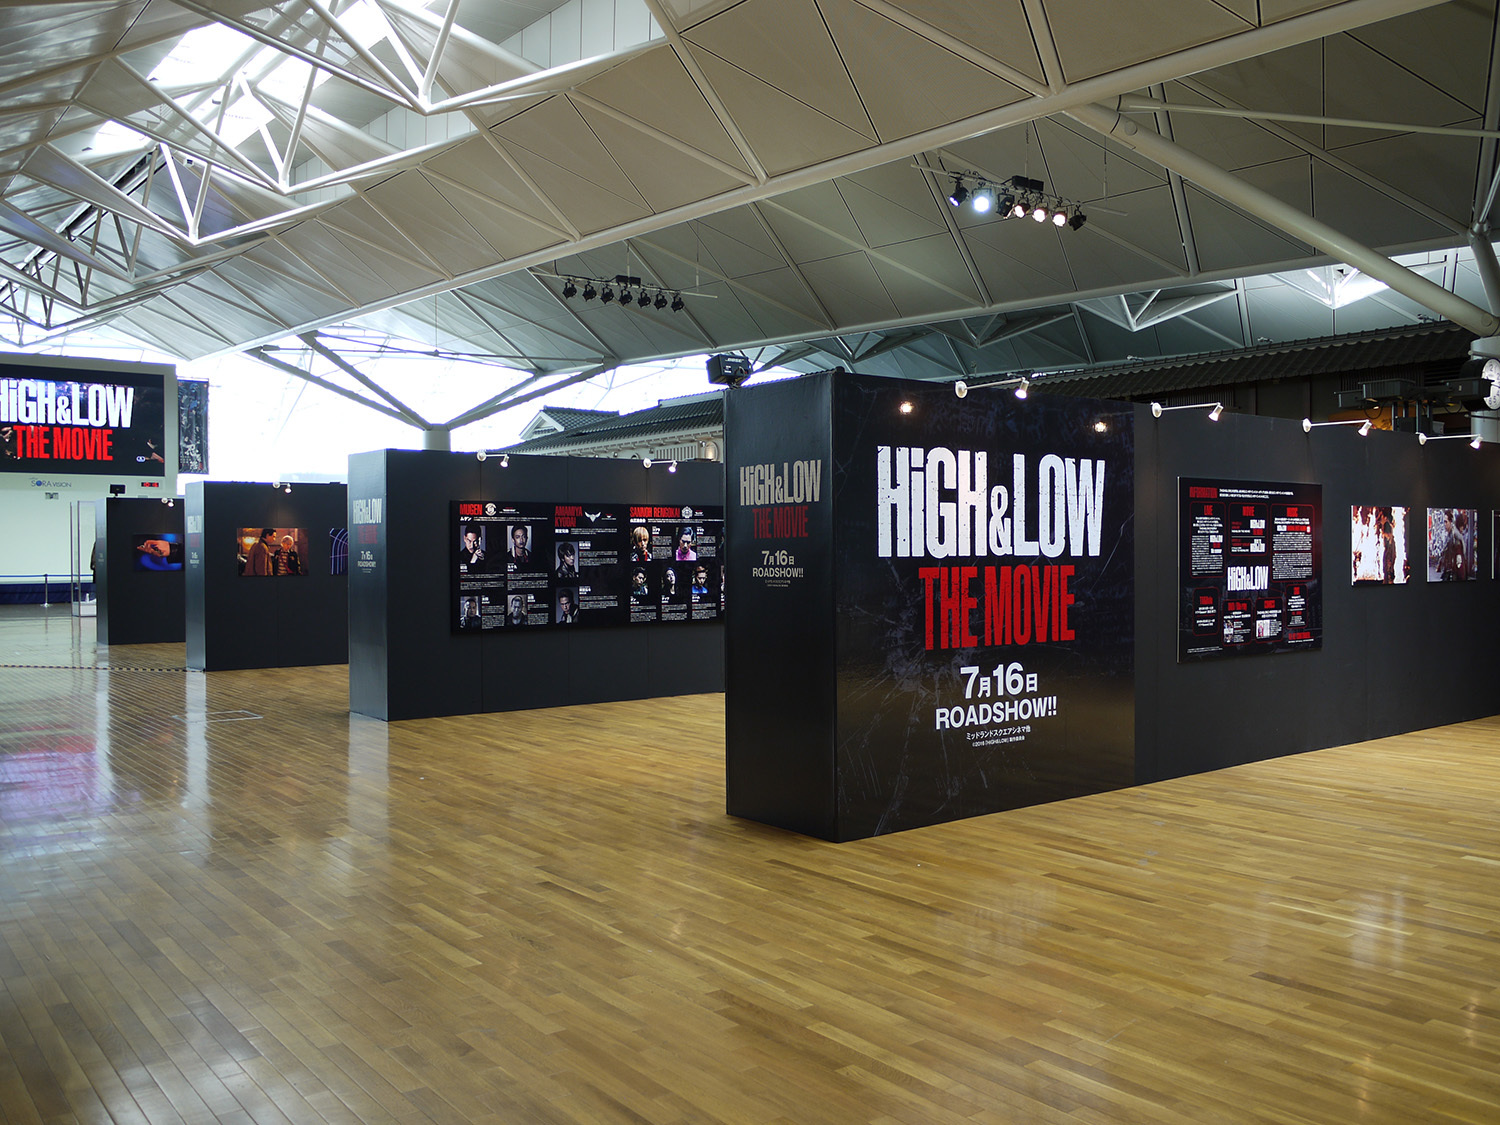 『HiGH&LOW THE MOVIE』 パネル展